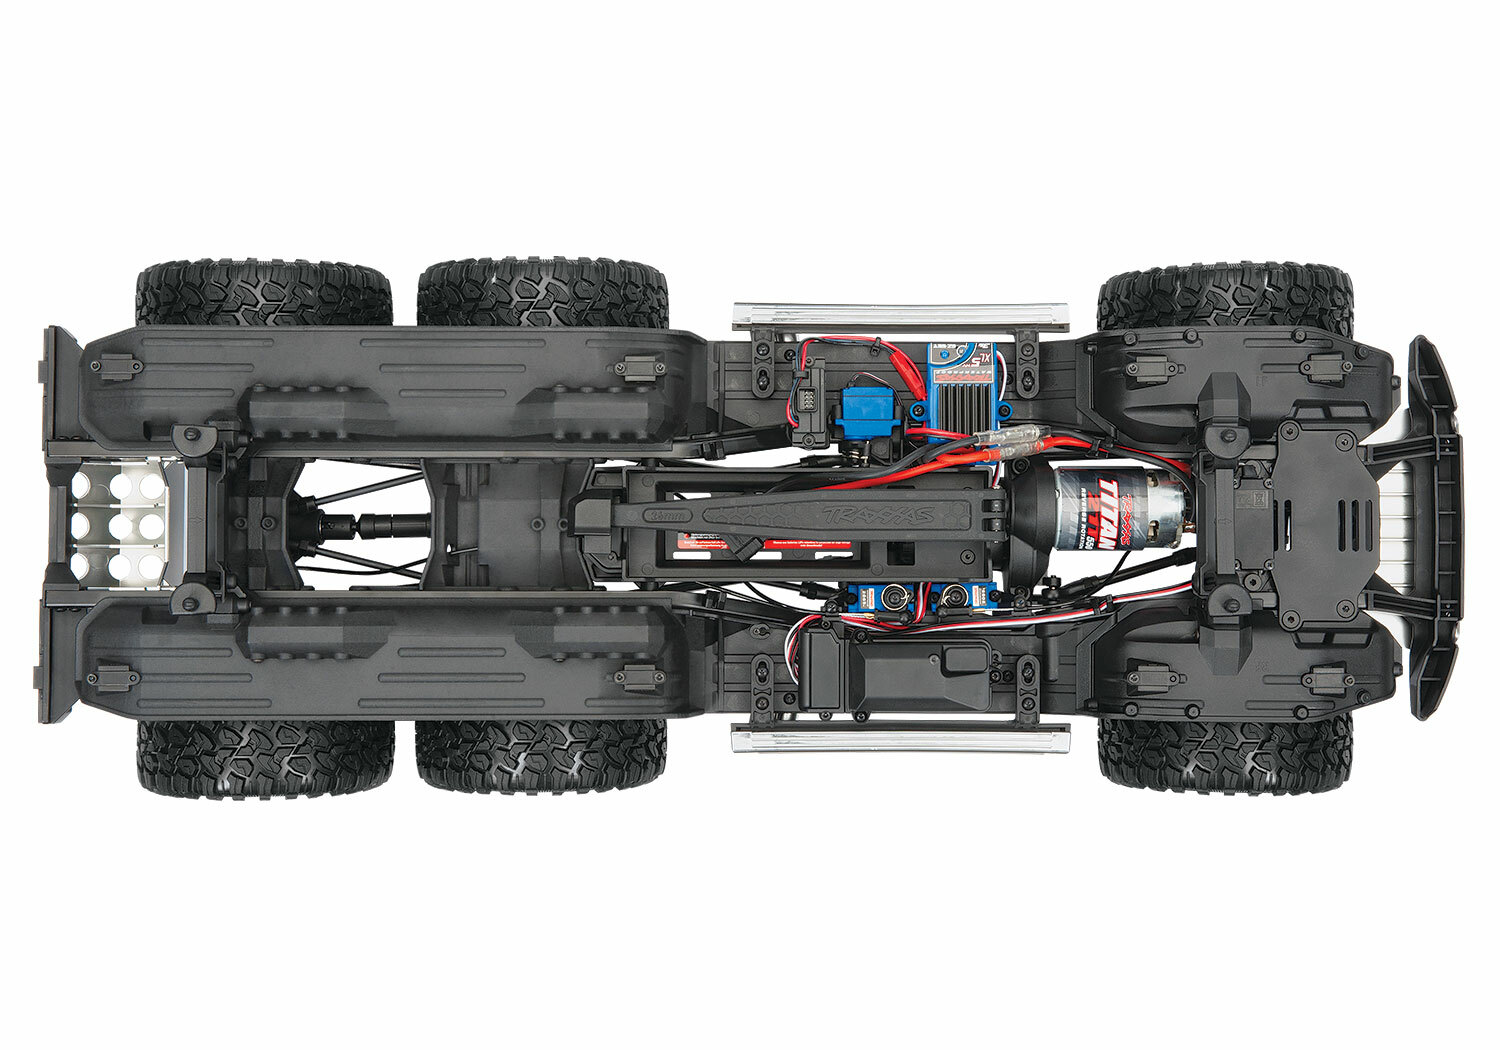 Traxxas TRX-6 Matte Graphite Metallic Mercedes-Benz G 63 AMG 6x6 (XL-5HV, TQi, LED Lights) (Wireless Module/3S 5000mAh LiPo Battery/Live iD Charger/Phone Mount) - Special Edition